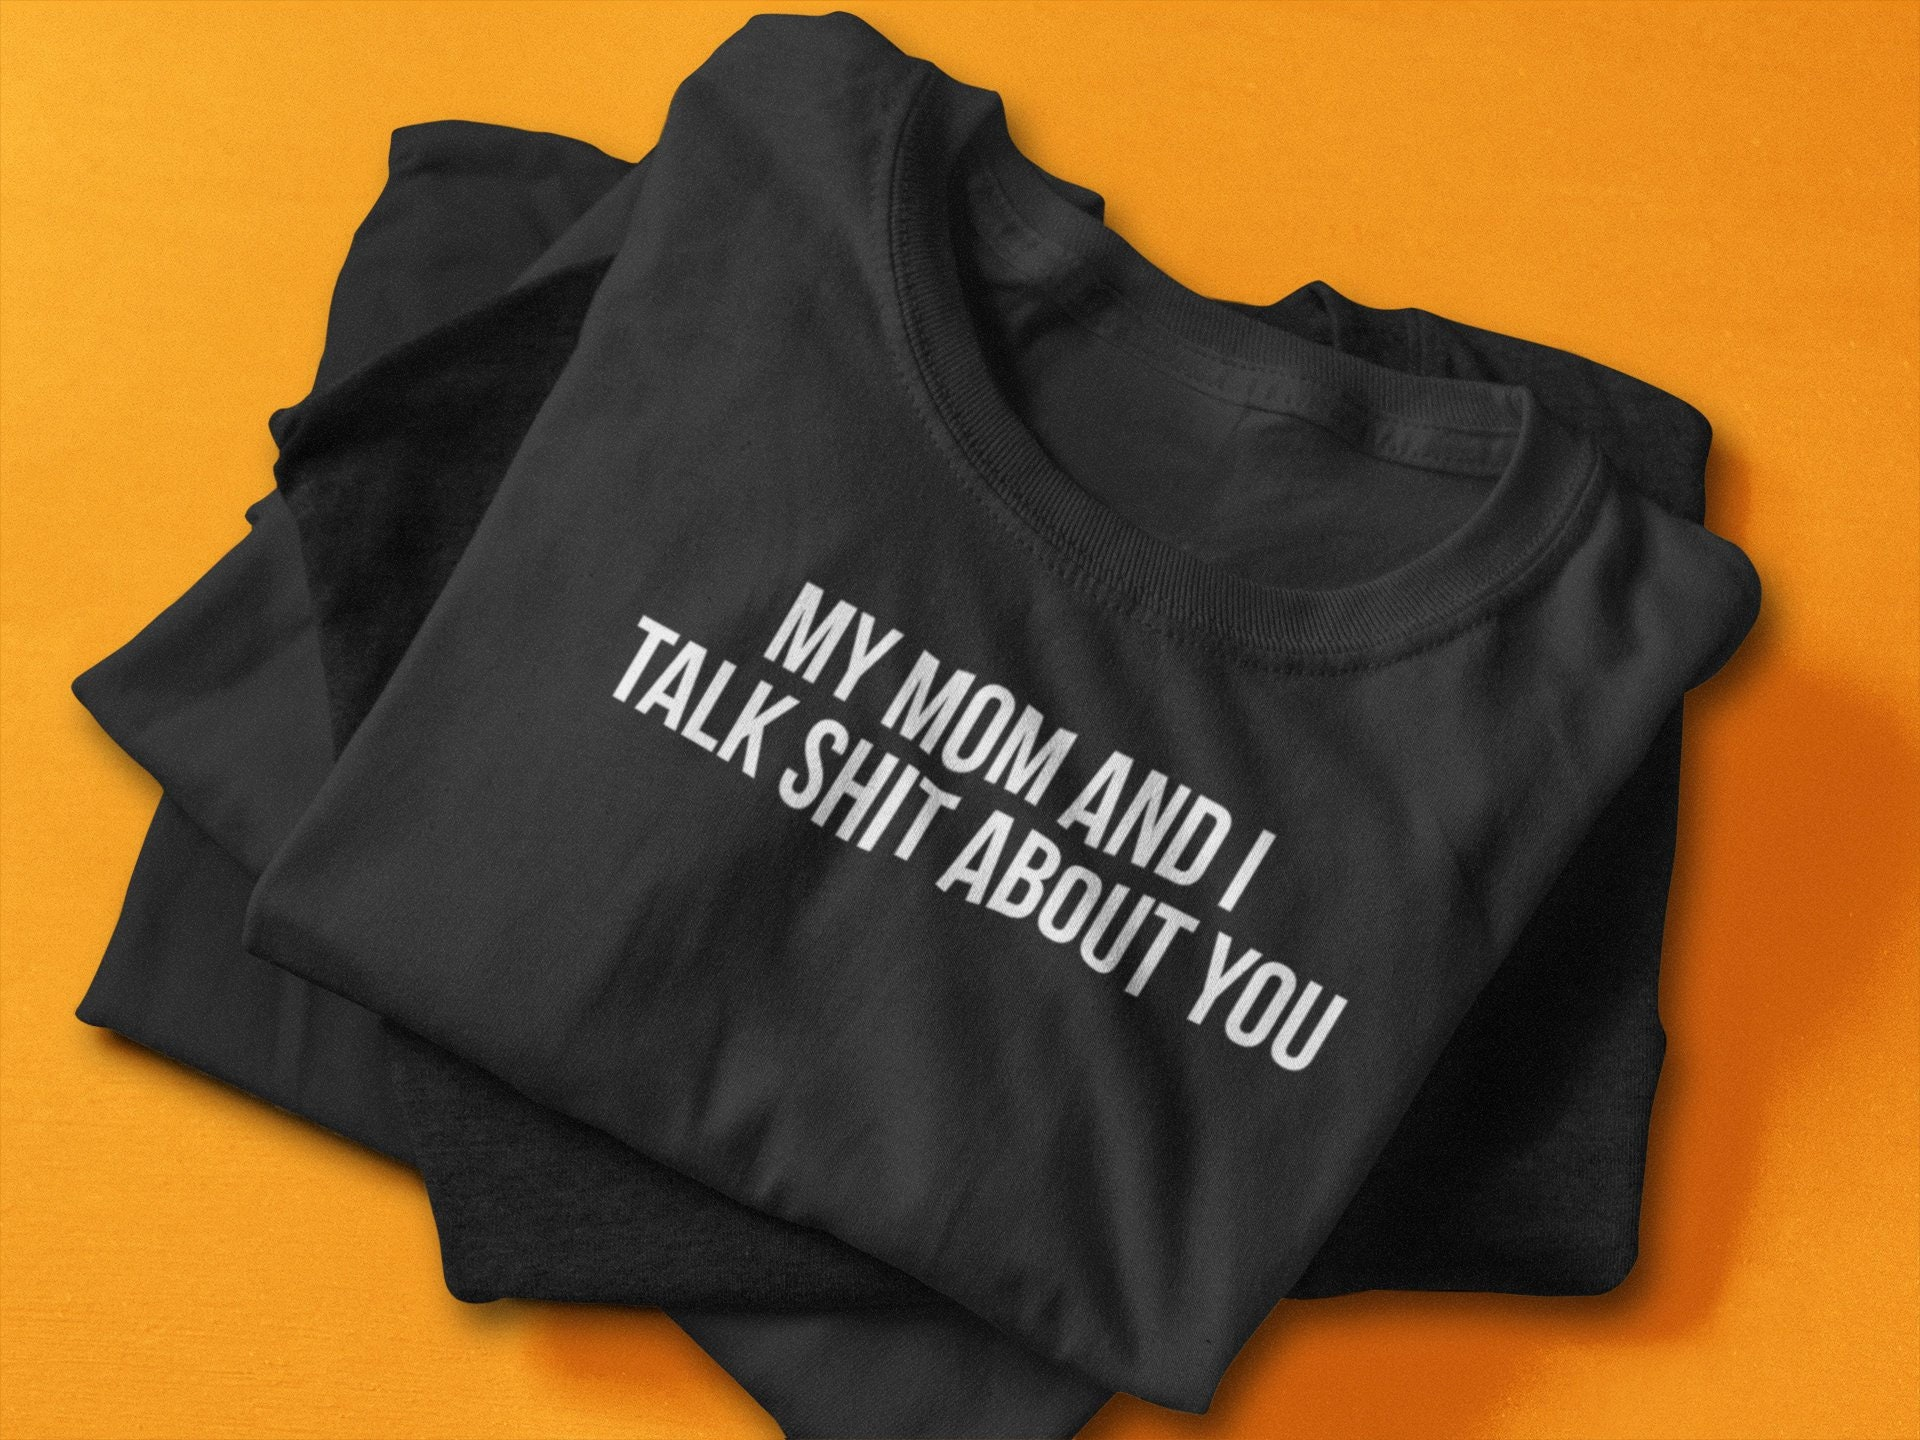 ba4457164 My Mom And I Talk Shit About You Unisex Tee Matching Mom | Etsy